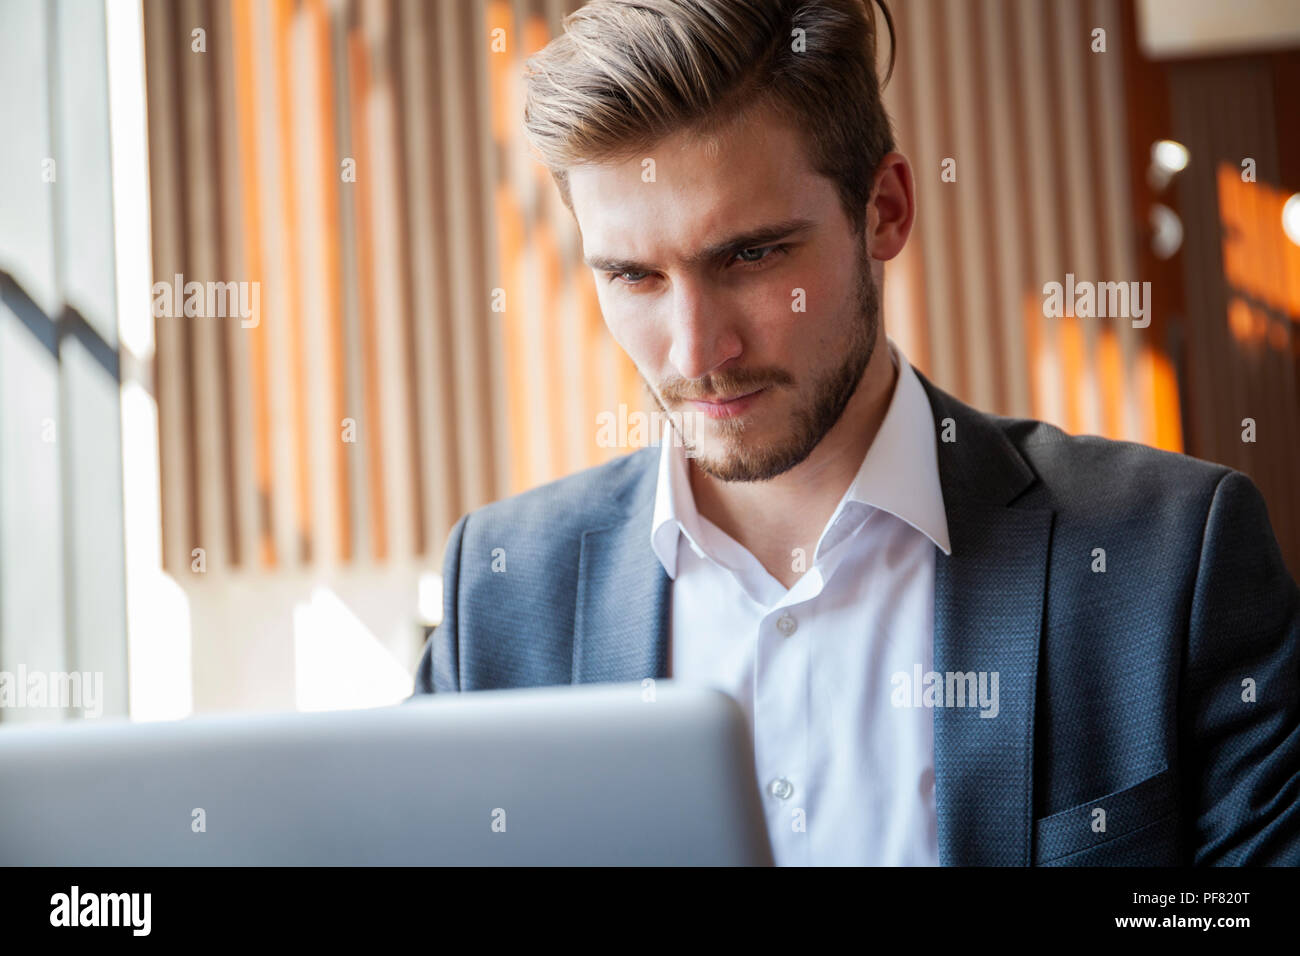 Young businessman working on laptop, sitting in hotel lobby waiting for someone. - Stock Image